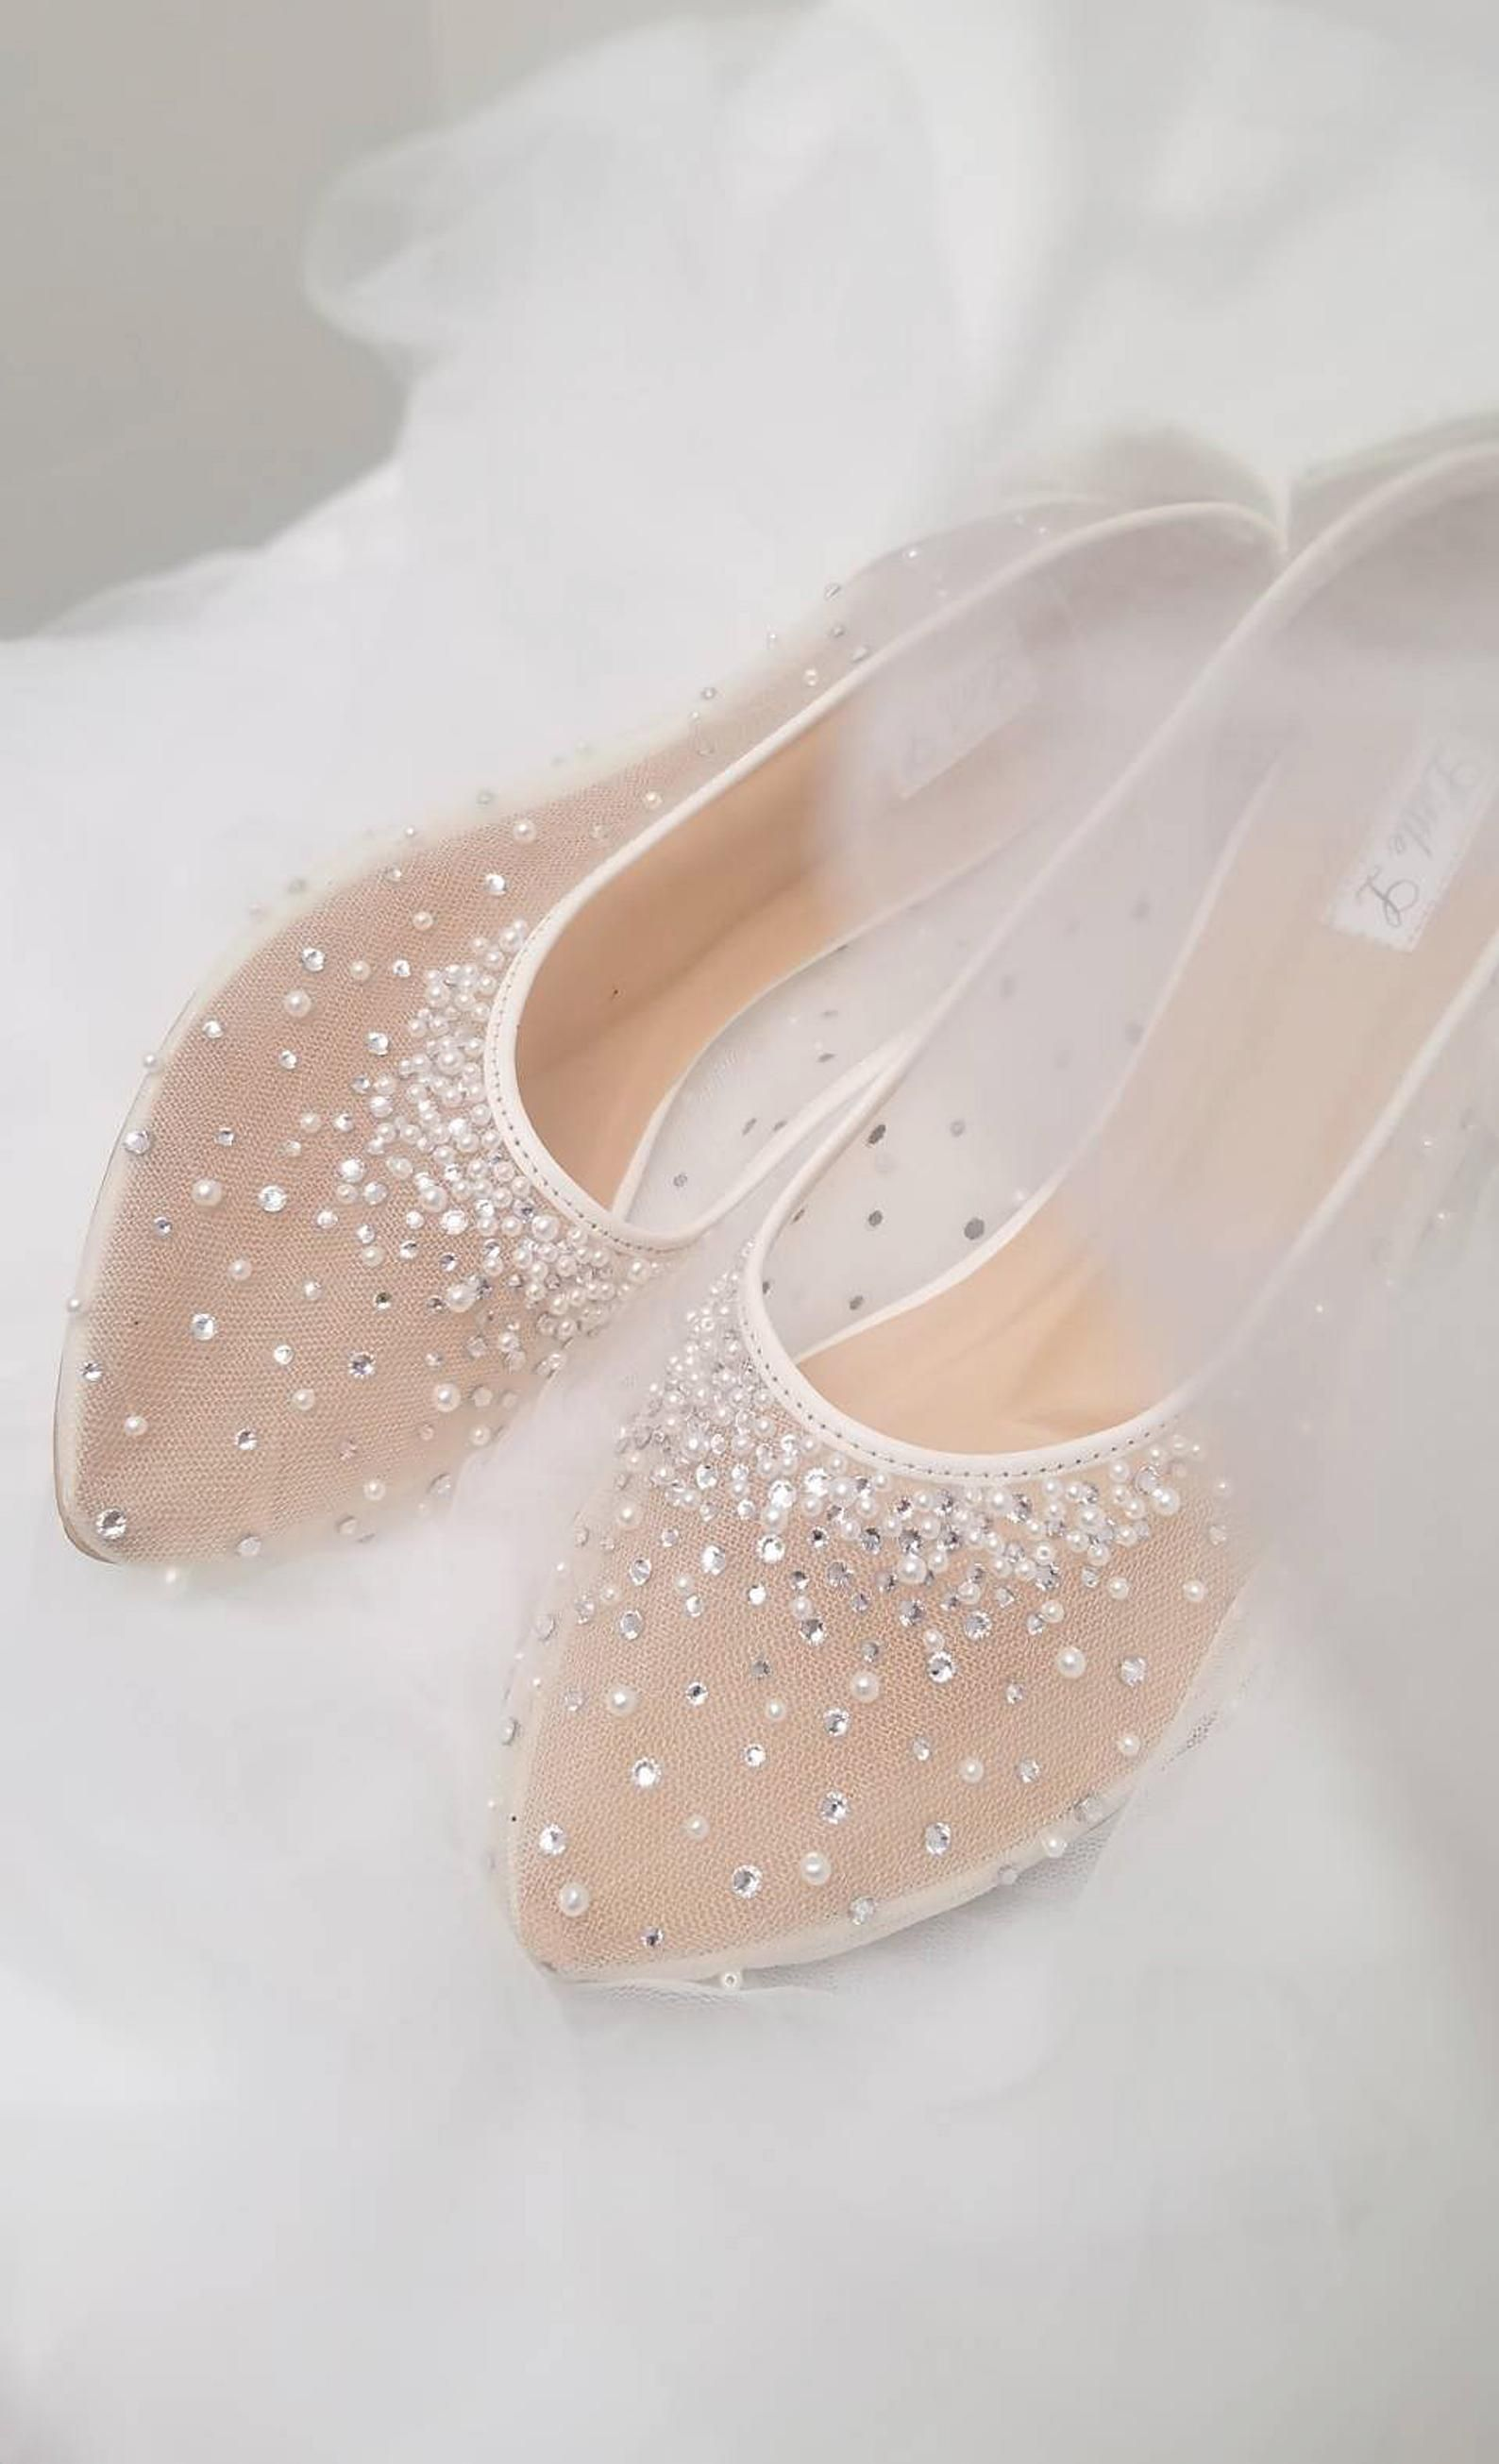 Wedding Shoes Transparent White Lace Pearl Rhinestone Ivory Etsy In 2020 Wedding Shoes Lace Wedding Shoes Sandals Wedding Shoes Heels